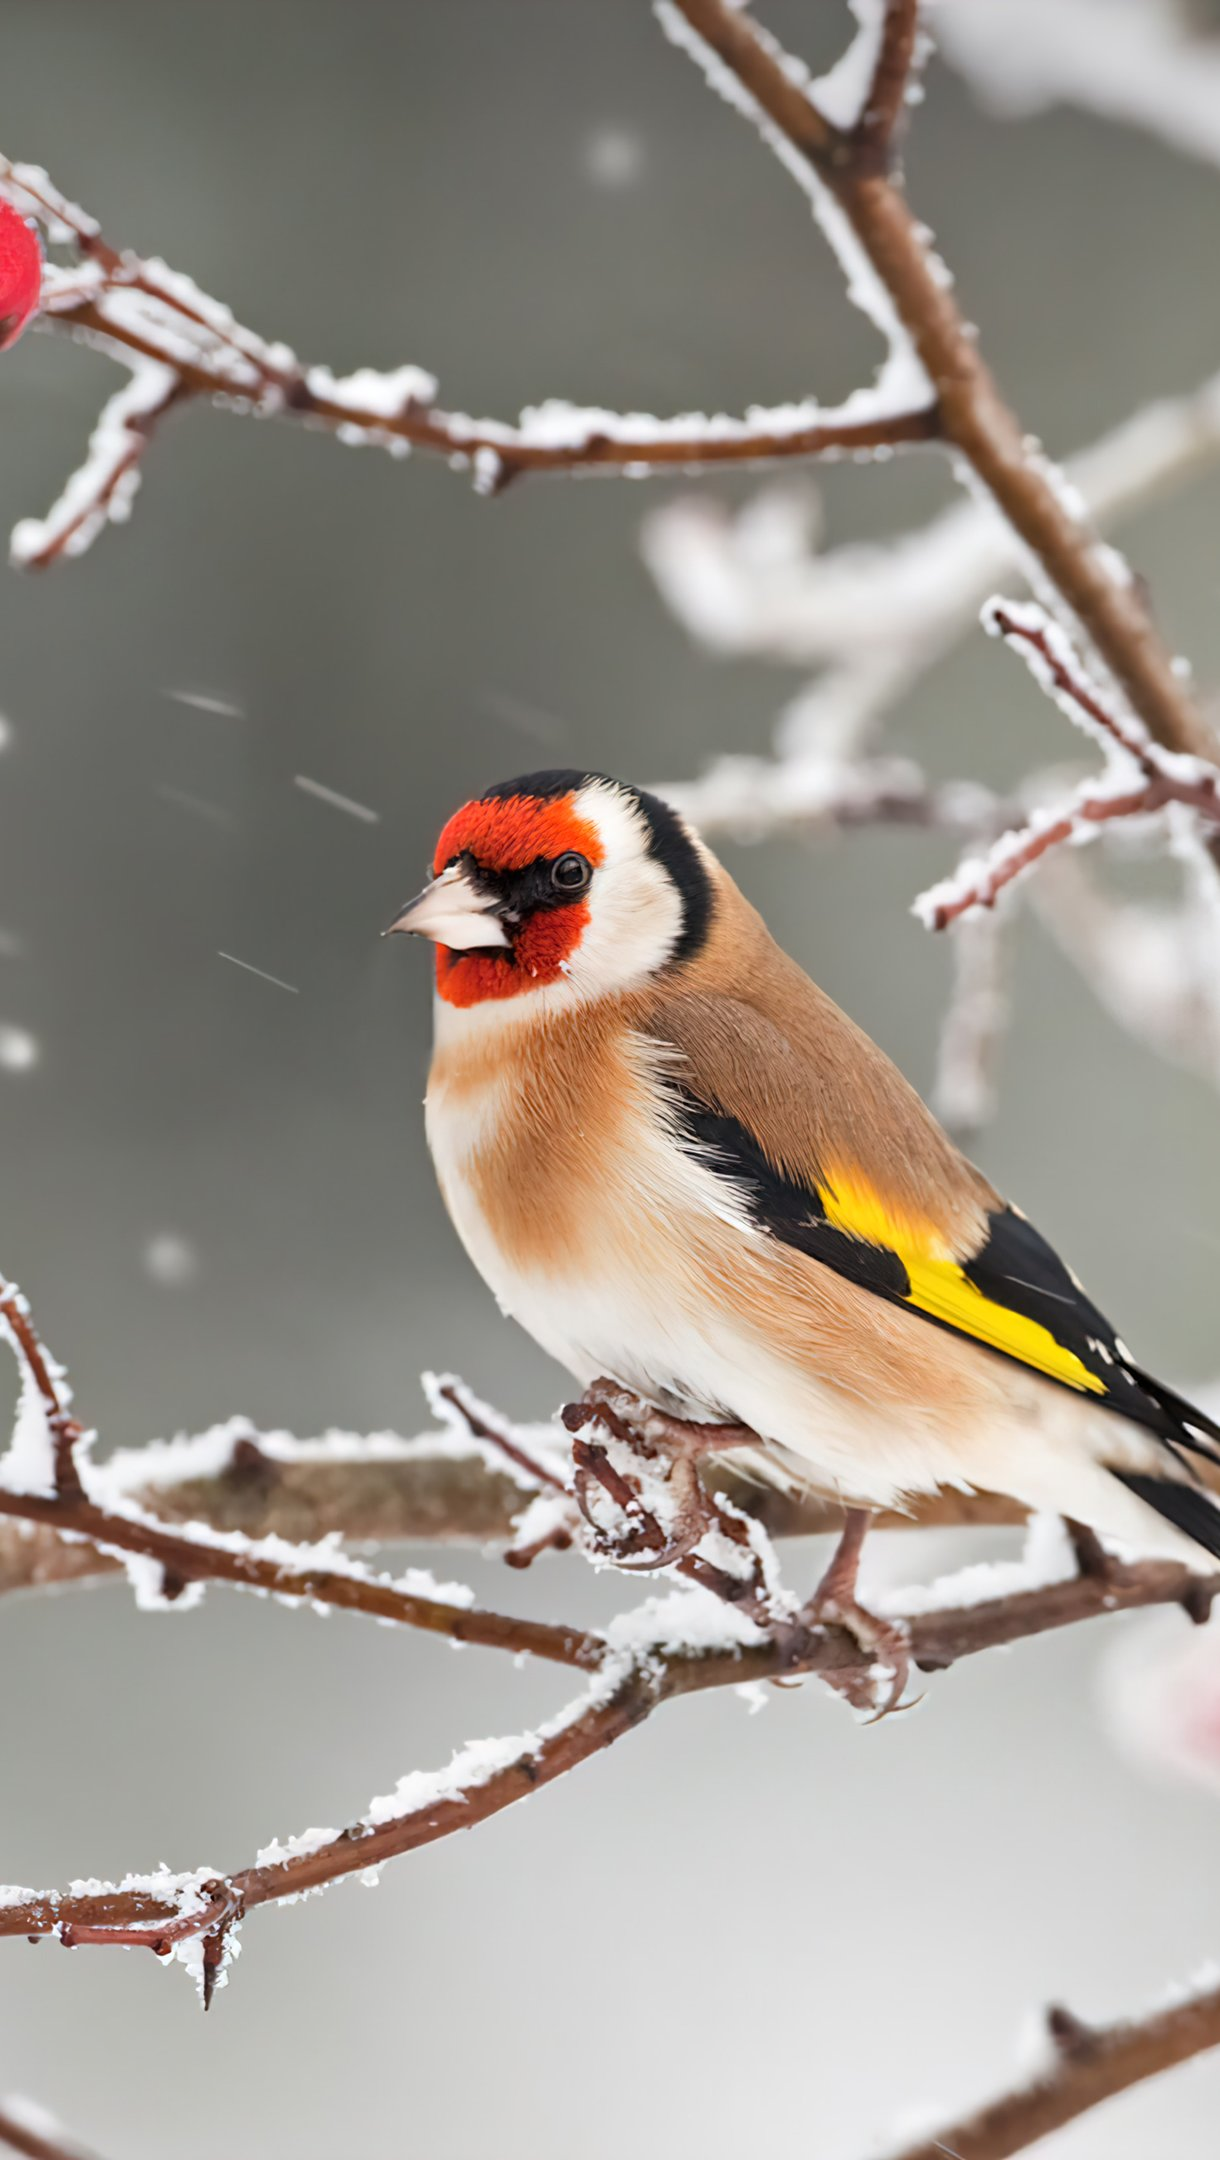 Wallpaper Bird with red head in the snow Vertical